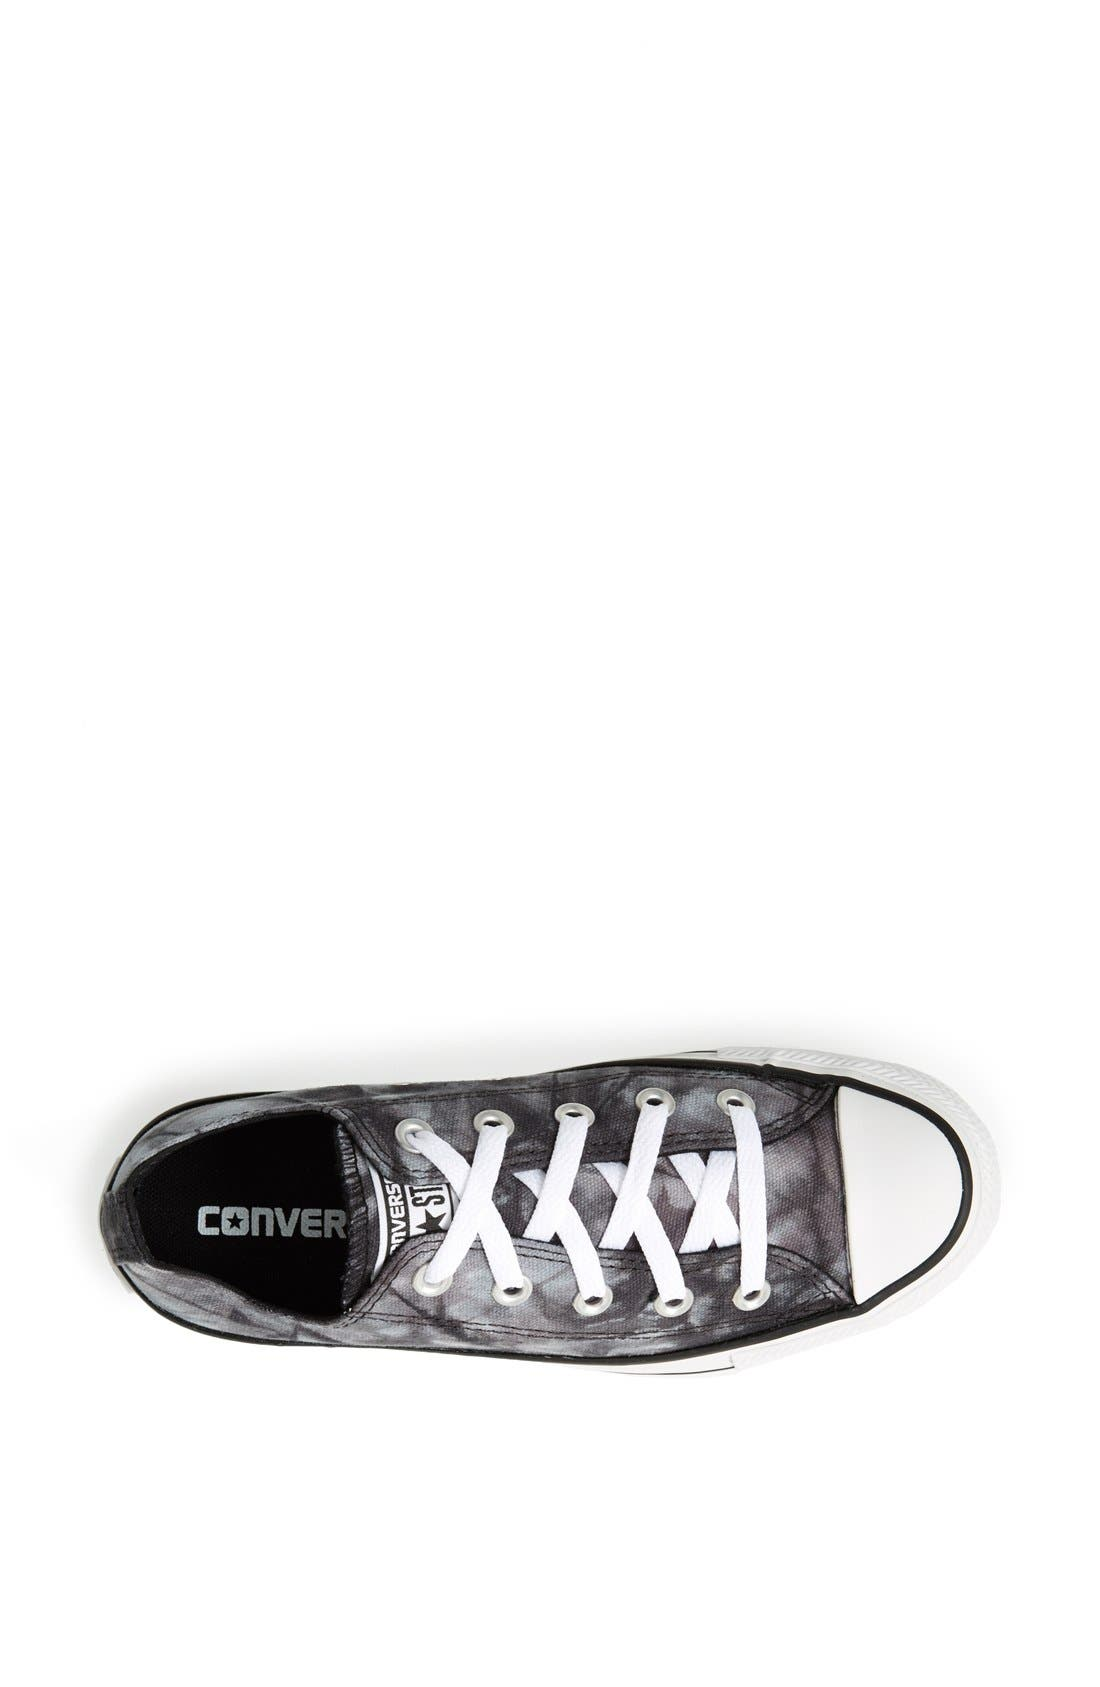 Alternate Image 3  - Converse Chuck Taylor® All Star® 'Ox' Tie Dye Low Top Sneaker (Women)